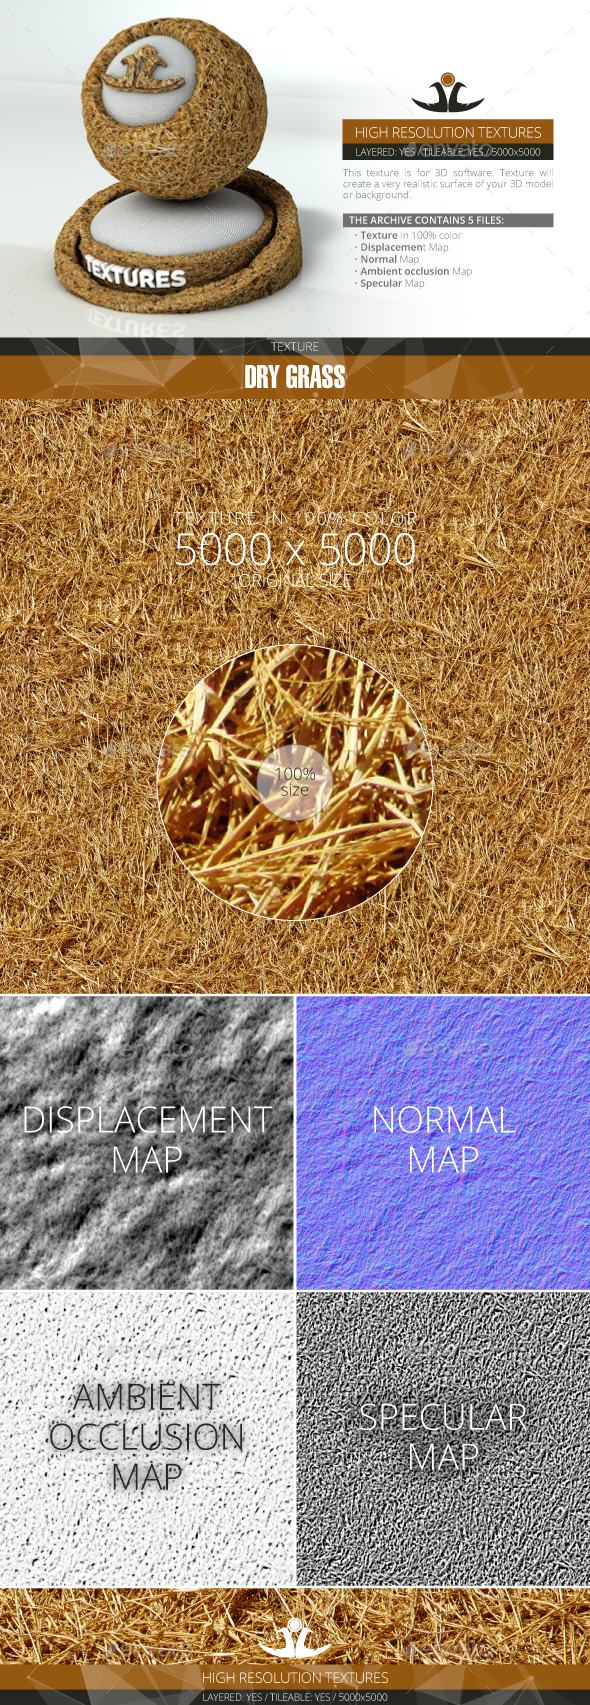 Dry Grass 3 - 3DOcean Item for Sale